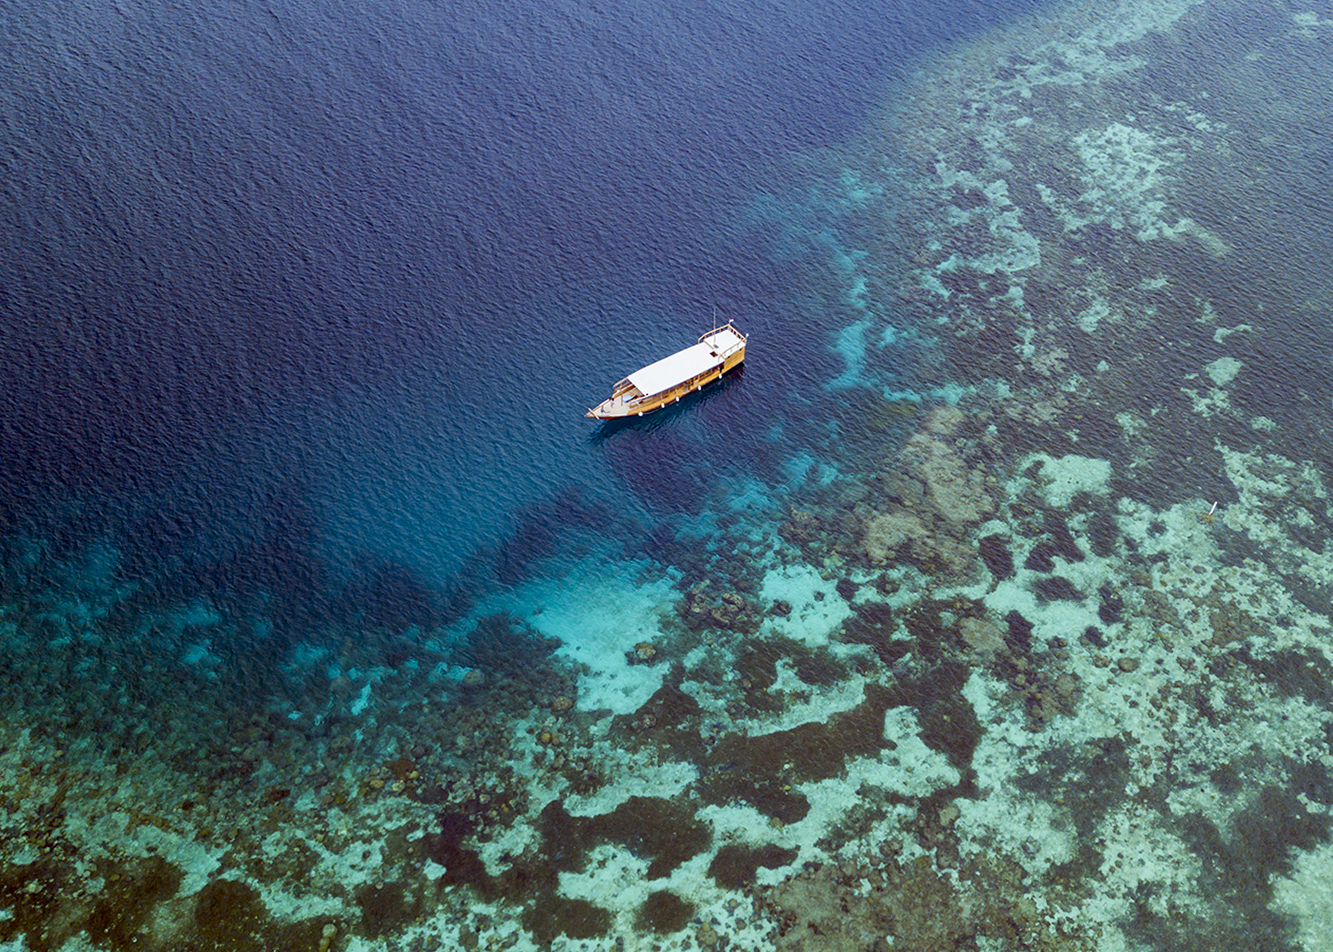 With seven dive boats in service, Wakatobi Dive Resort will once more be in a position to offer divers and snorkelers a diverse daily roster of sites and itineraries.